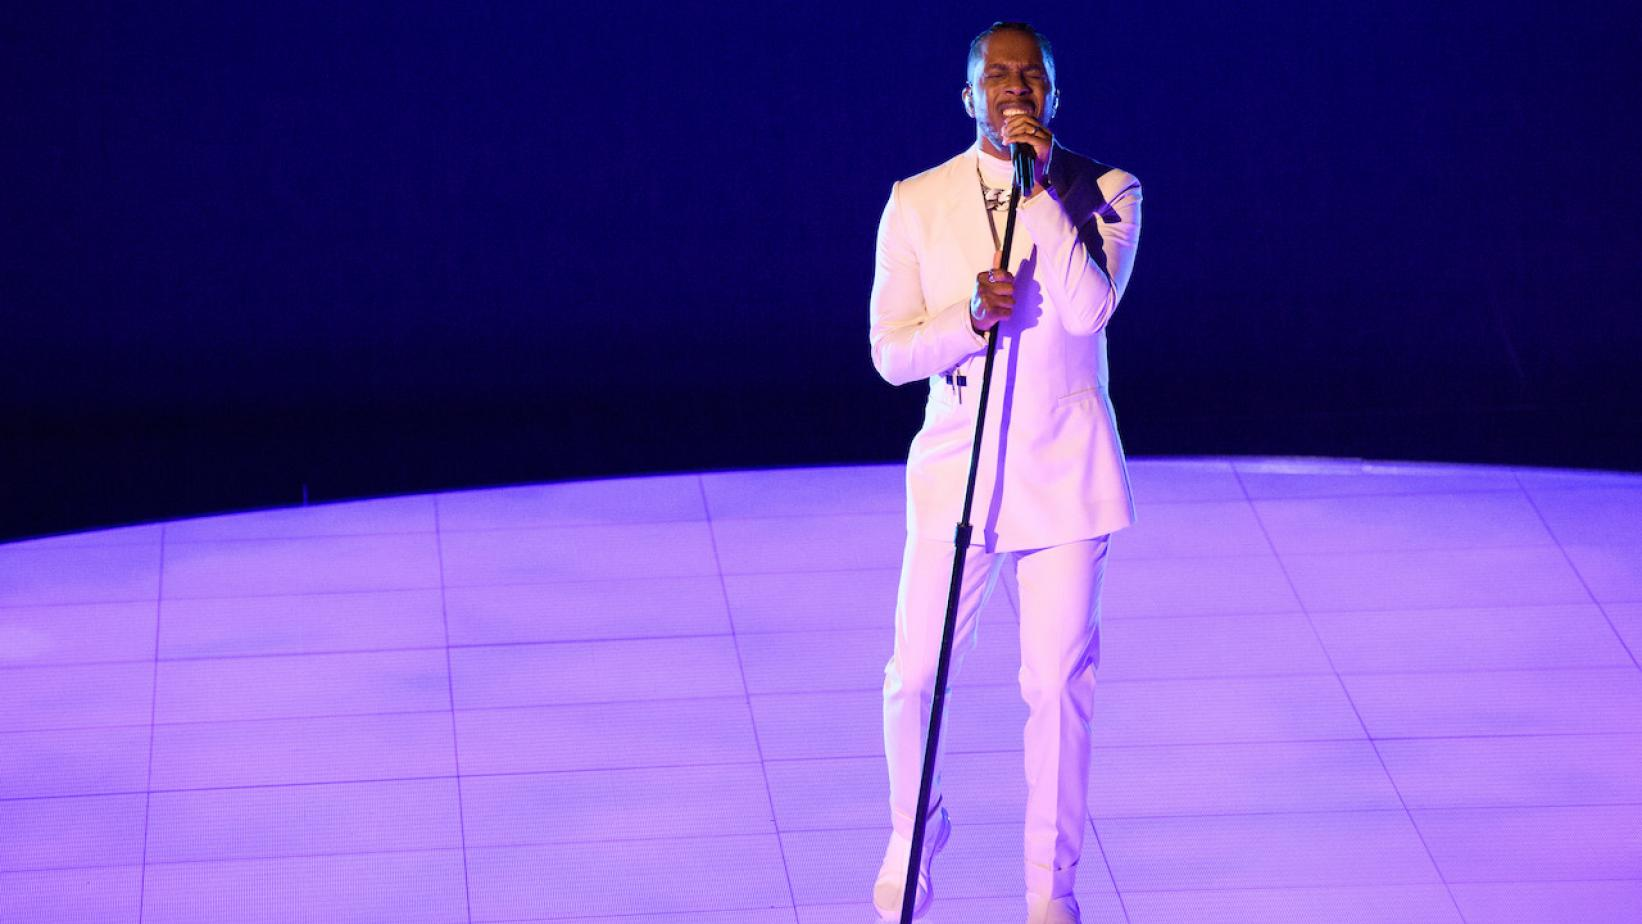 """Leslie Odom, Jr. performs at the """"Oscars: Into the Spotlight"""" special at the 2021 Oscars"""